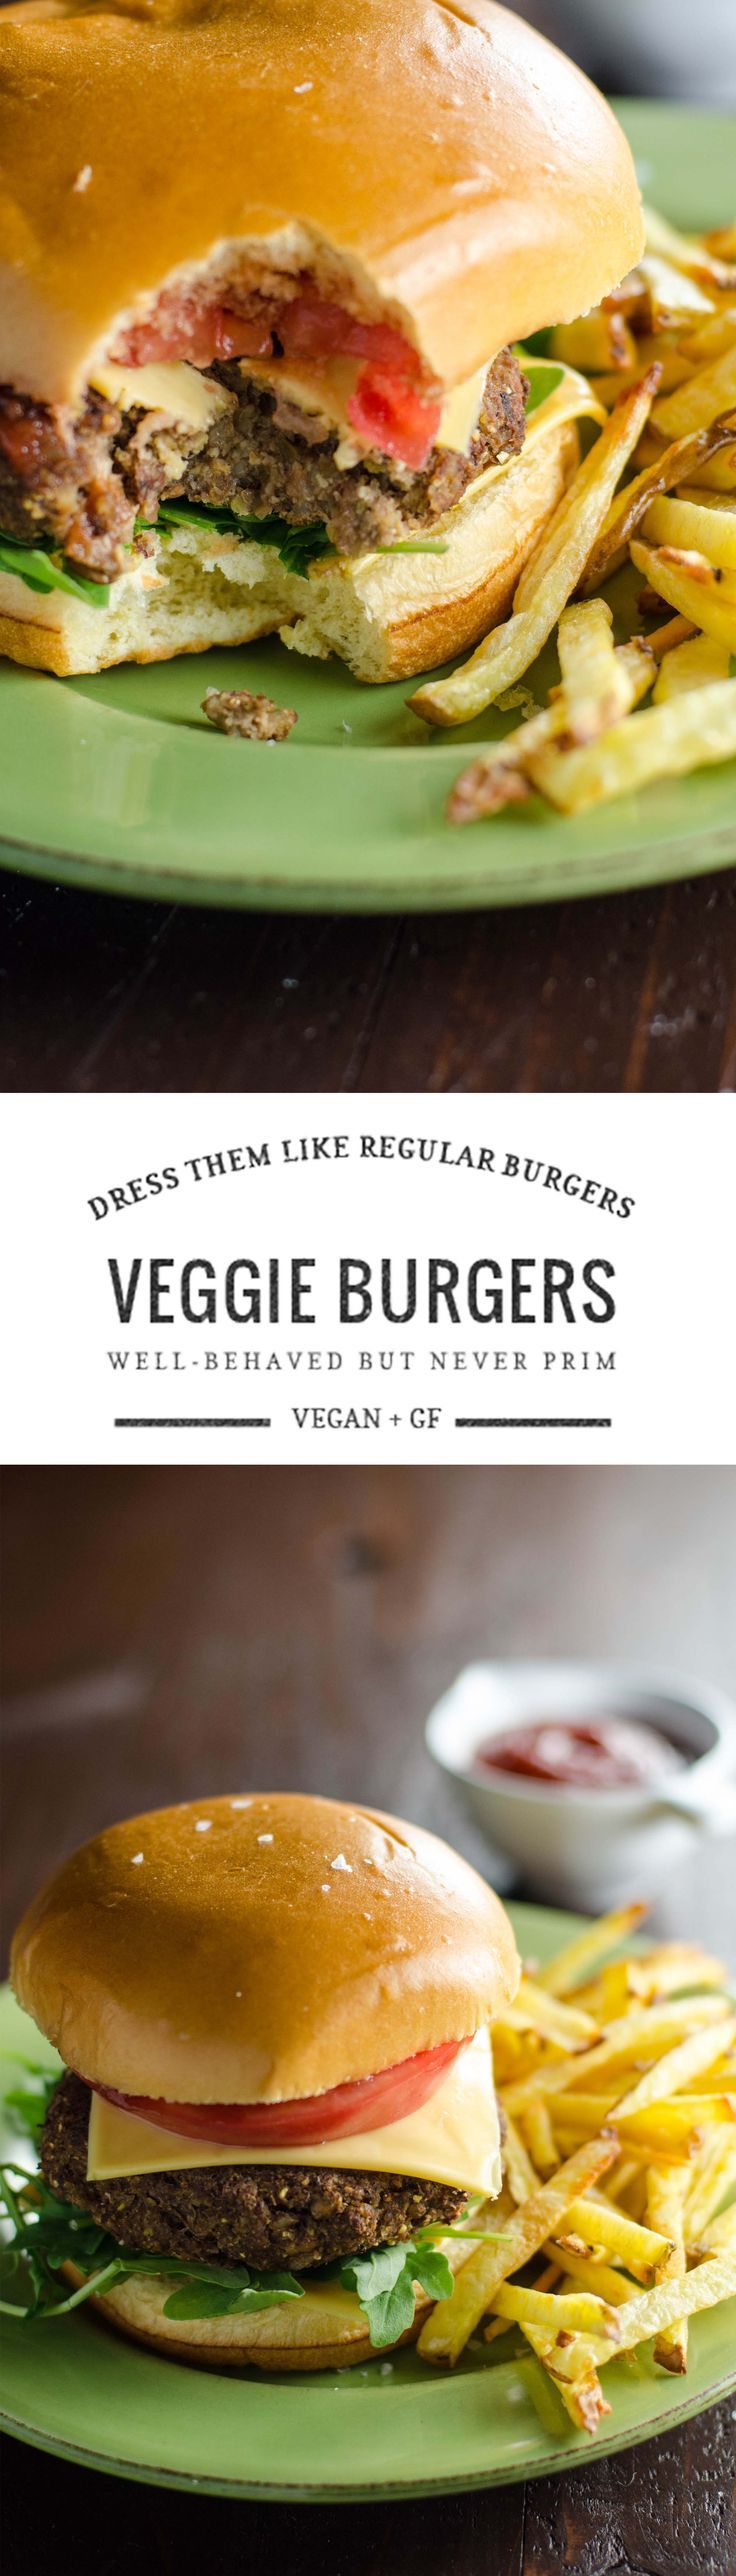 These really good veggie burgers have a great, savory flavor profile and are nice and sturdy, so you can treat them just like a regular burger. Vegan + GF.